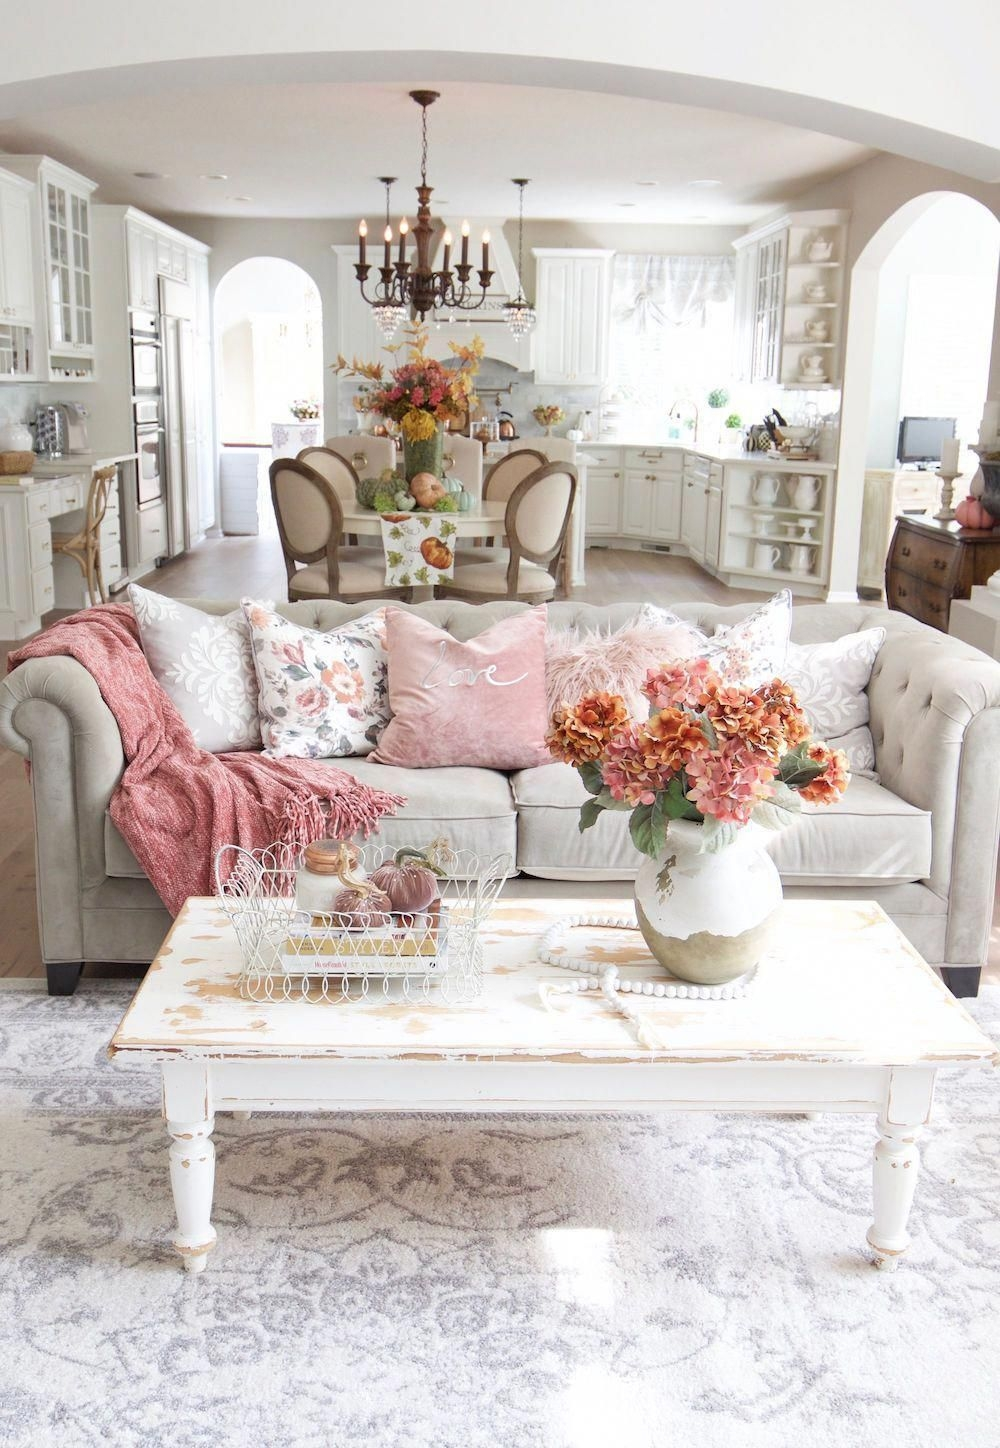 30 Beautiful French Country Living Room Decor Ideas To Copy Asap Gagohome